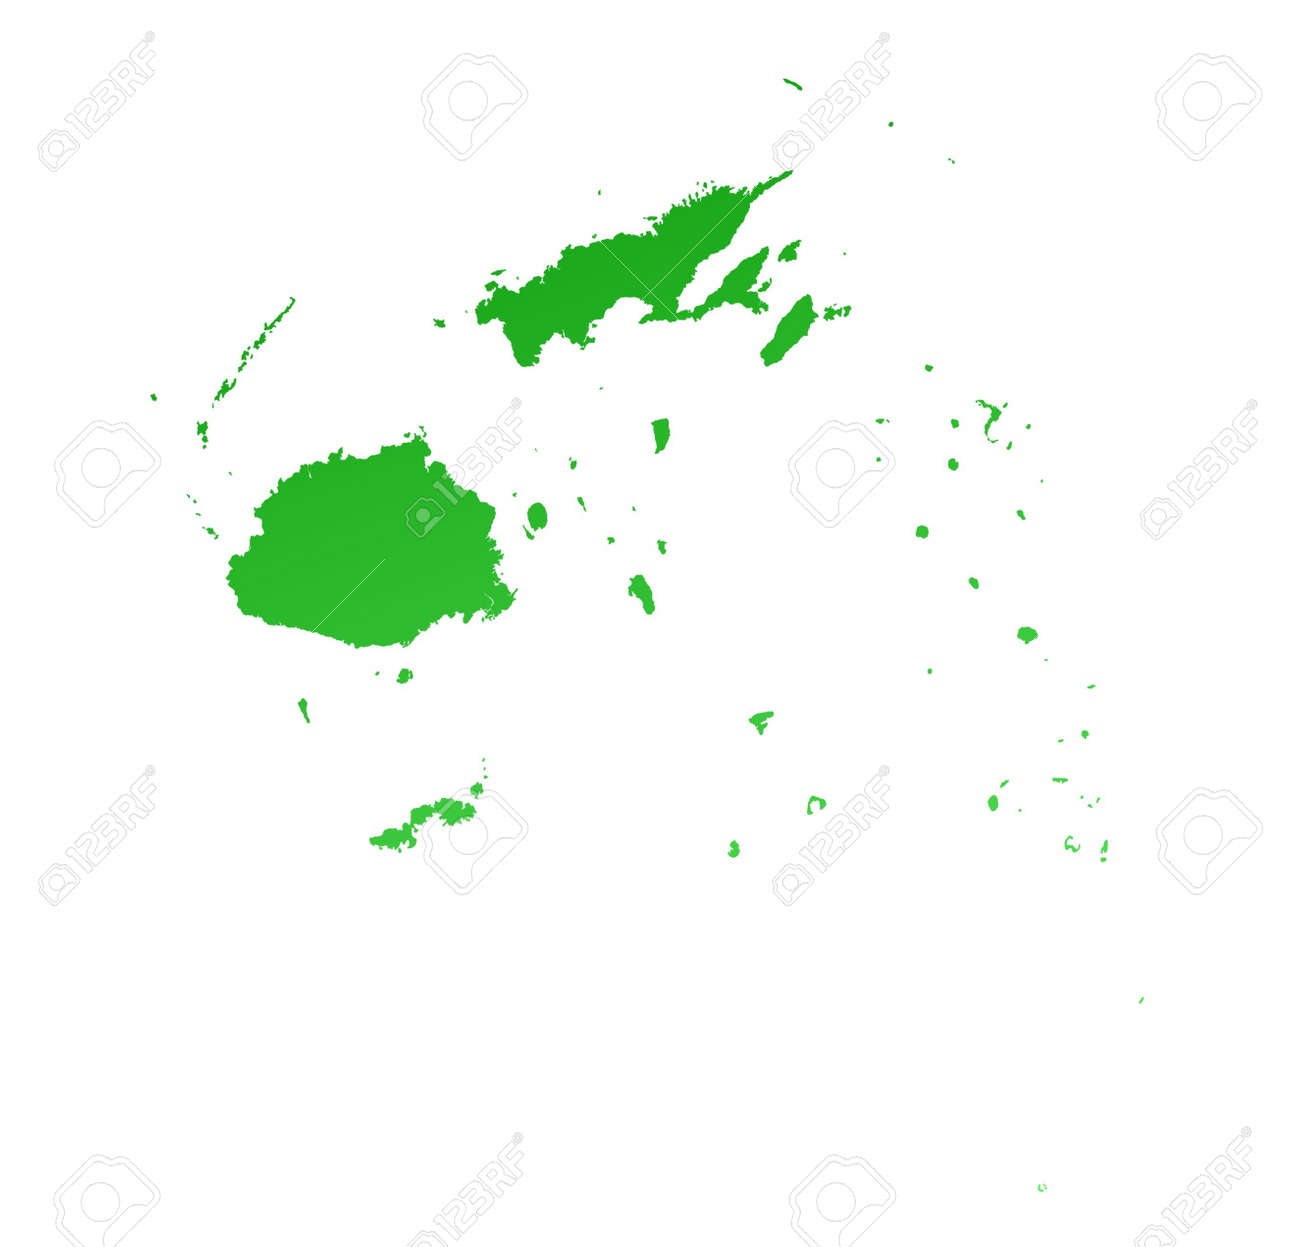 Green Gradient Fiji Map. Detailed, Mercator Projection. Stock Photo ...